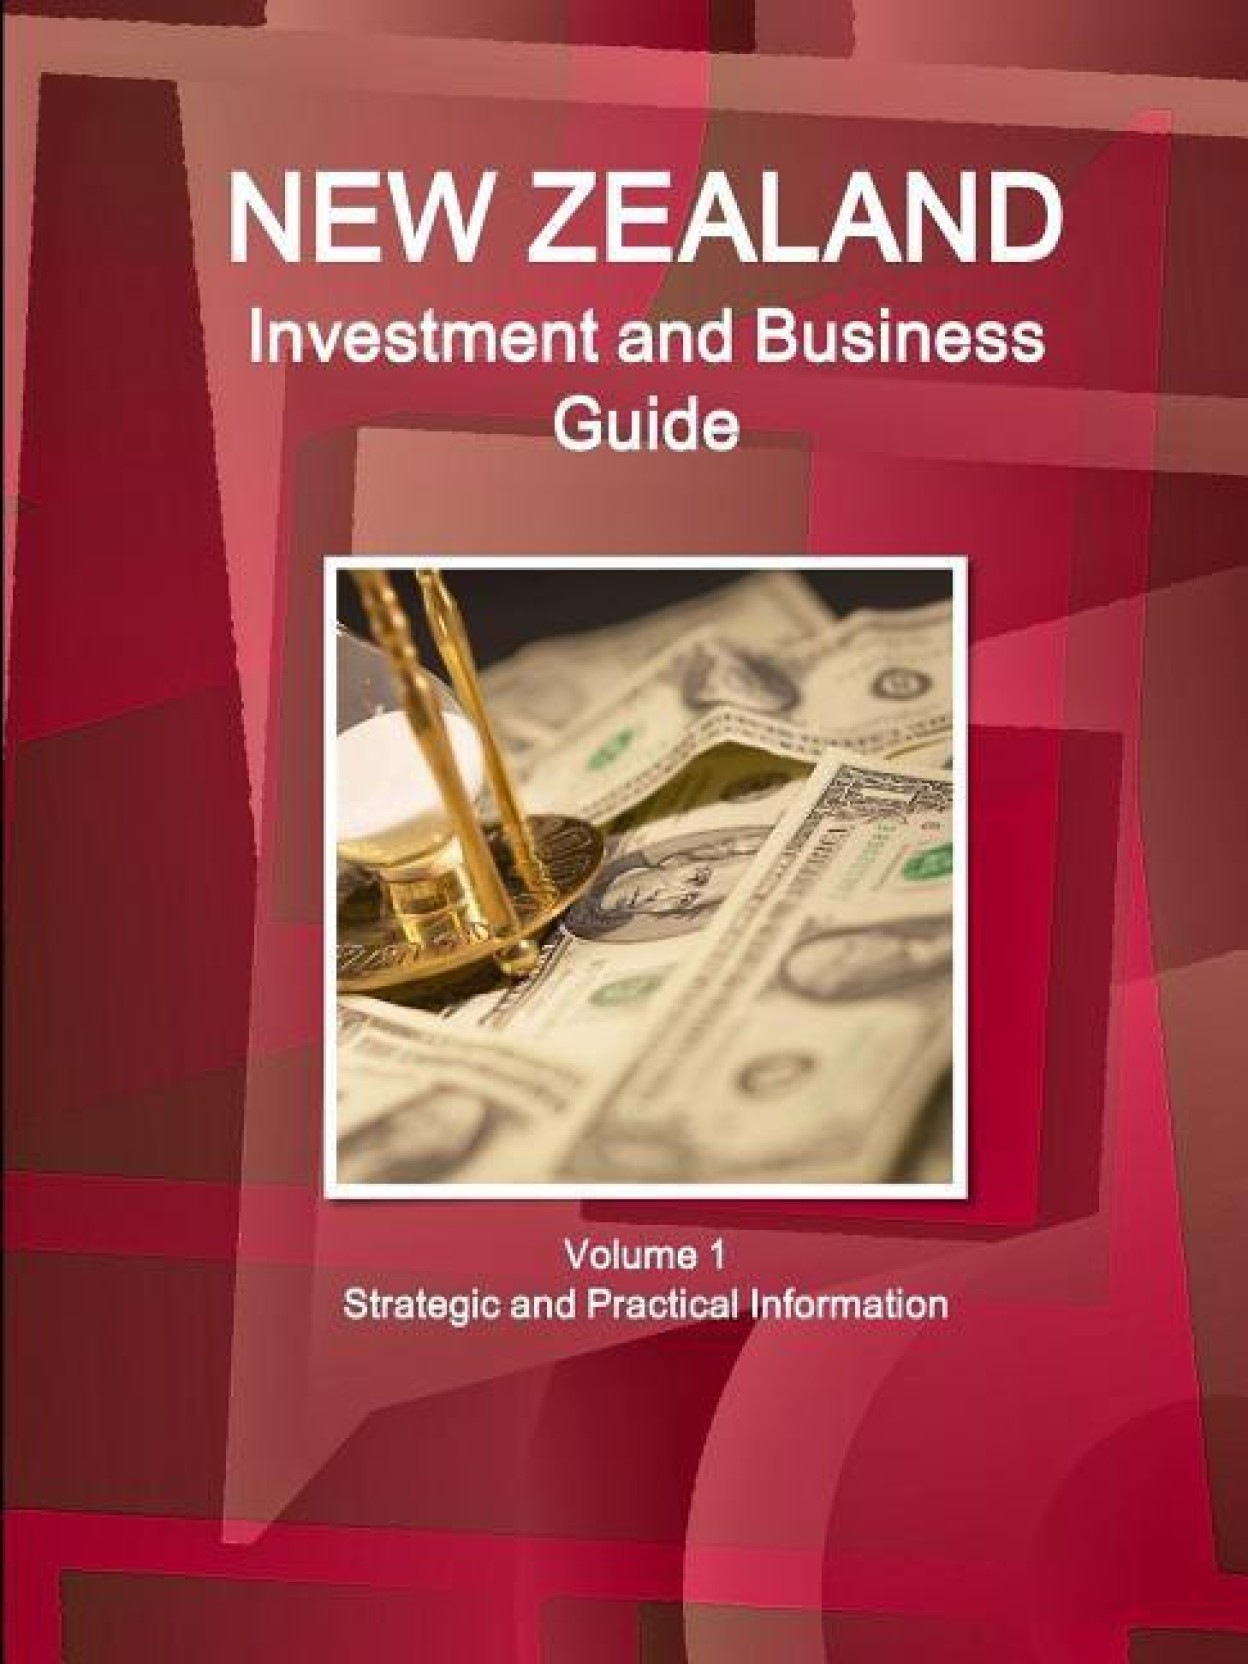 New Zealand Investment and Business Guide Volume 1 Strategic